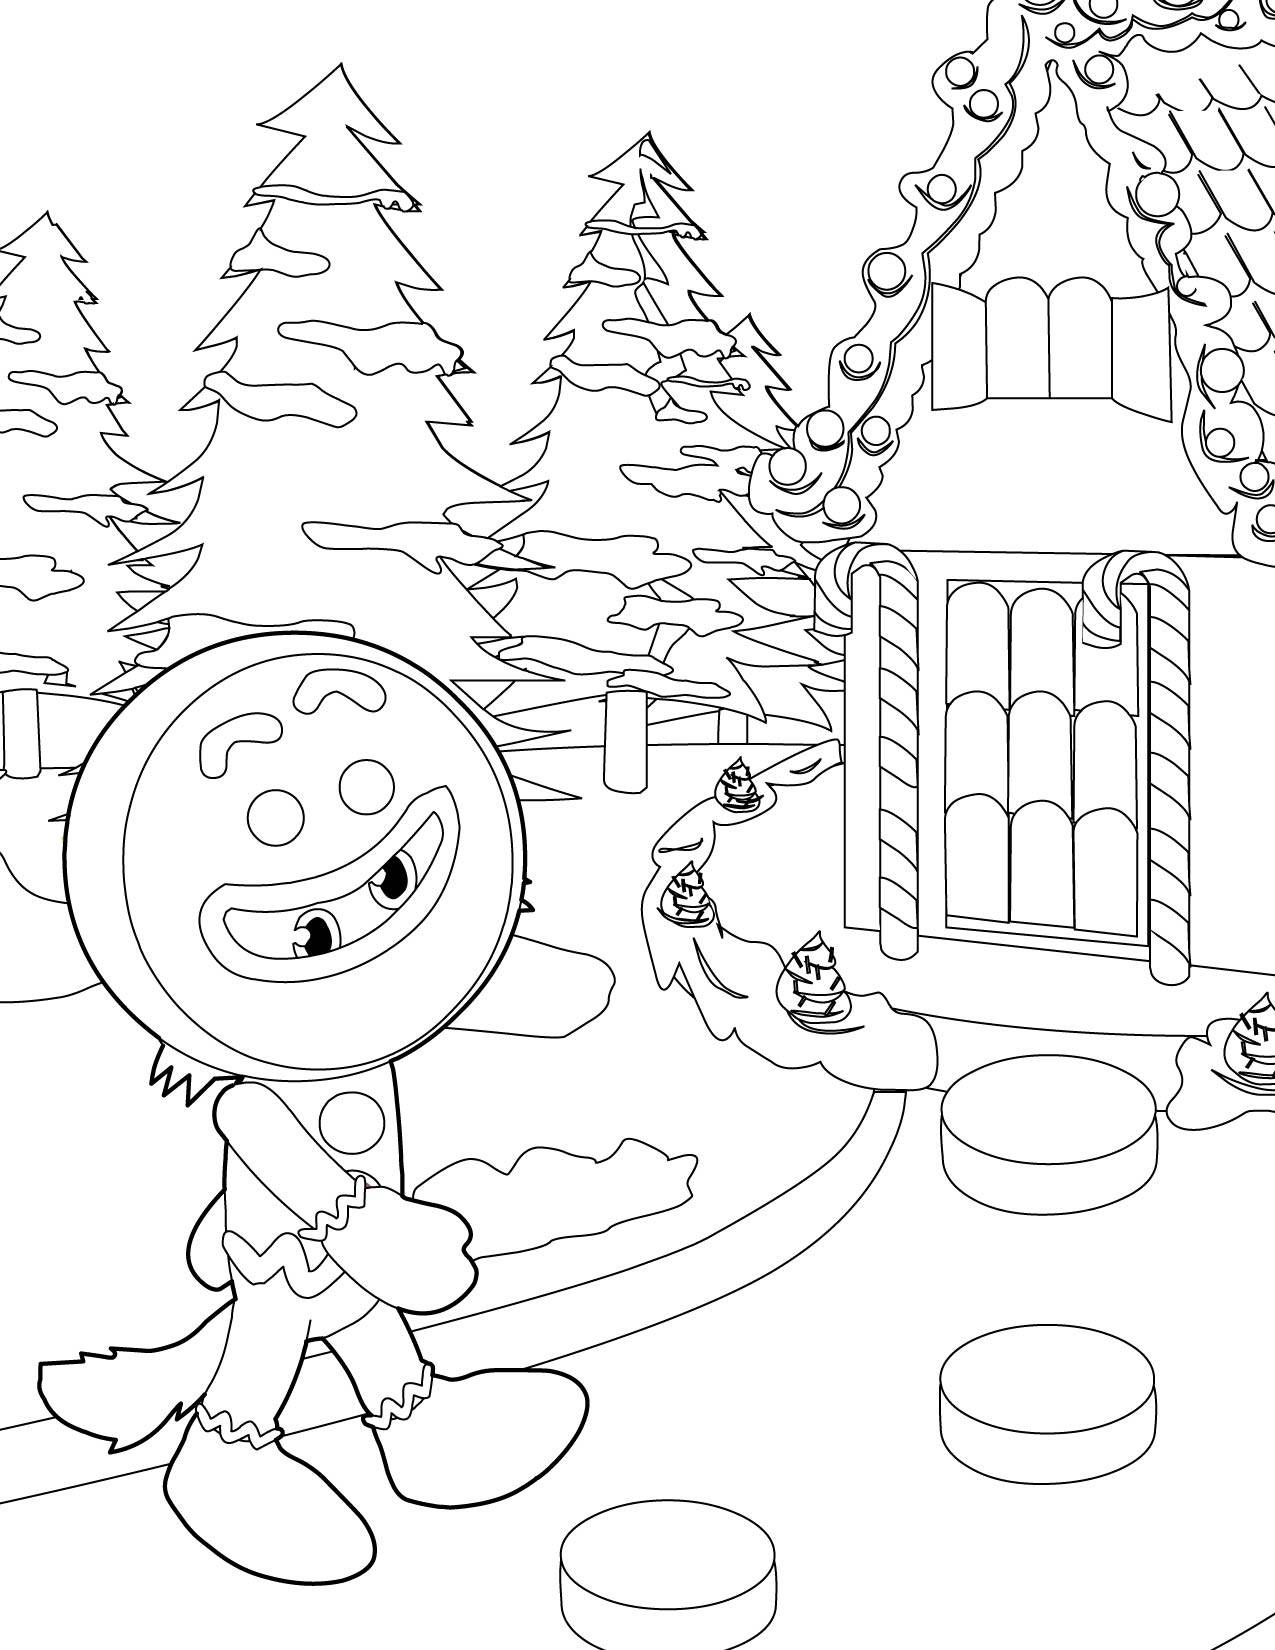 1275x1650 Gingerbread House Coloring Pages Printable For Kids Pictures